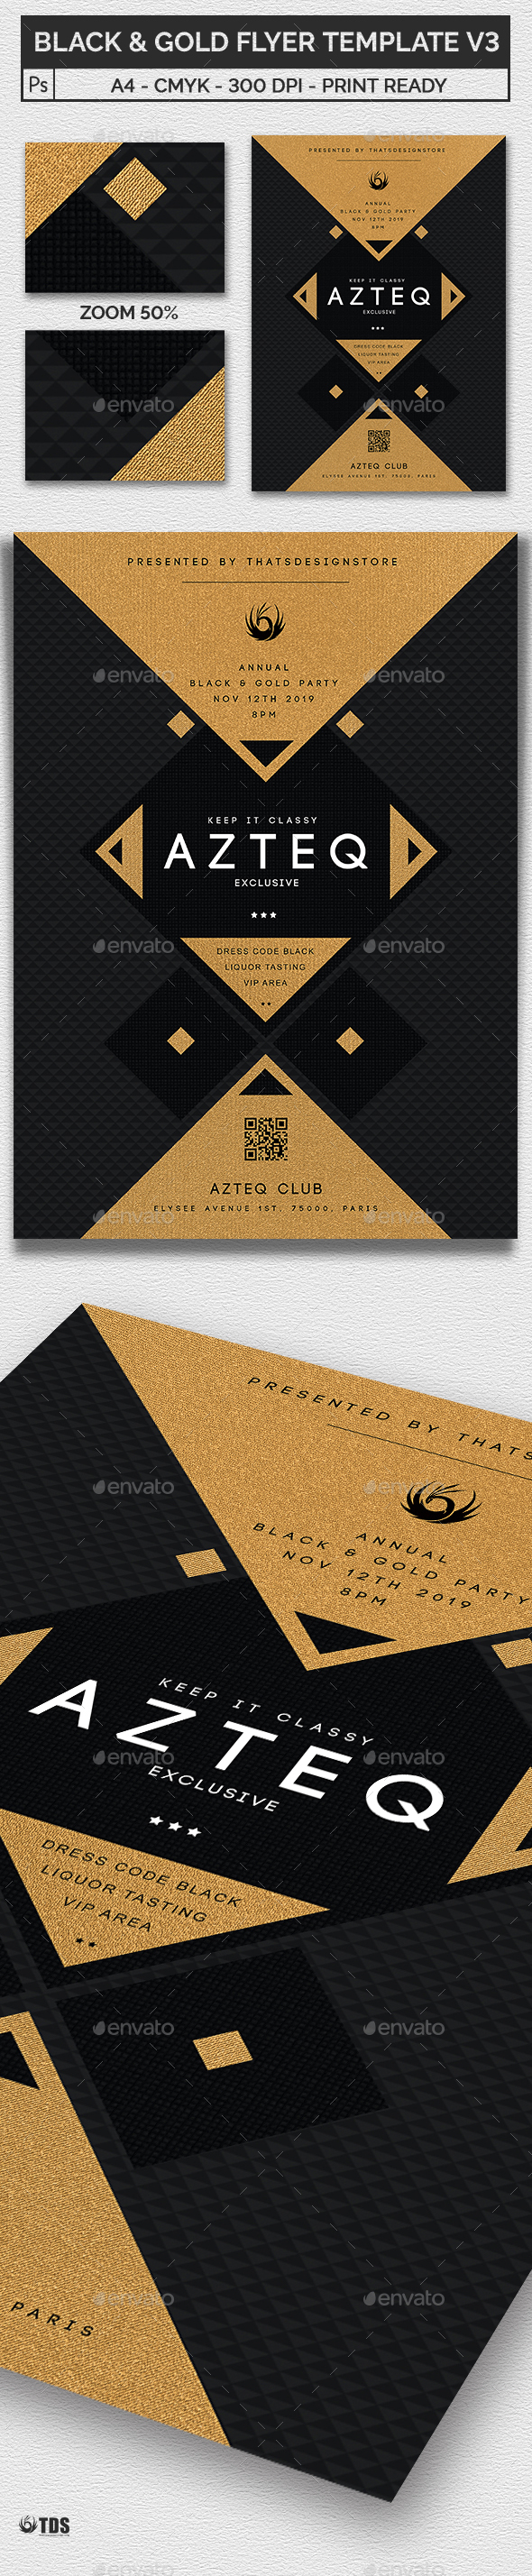 Minimal Black and Gold Flyer Template V3 - Clubs & Parties Events